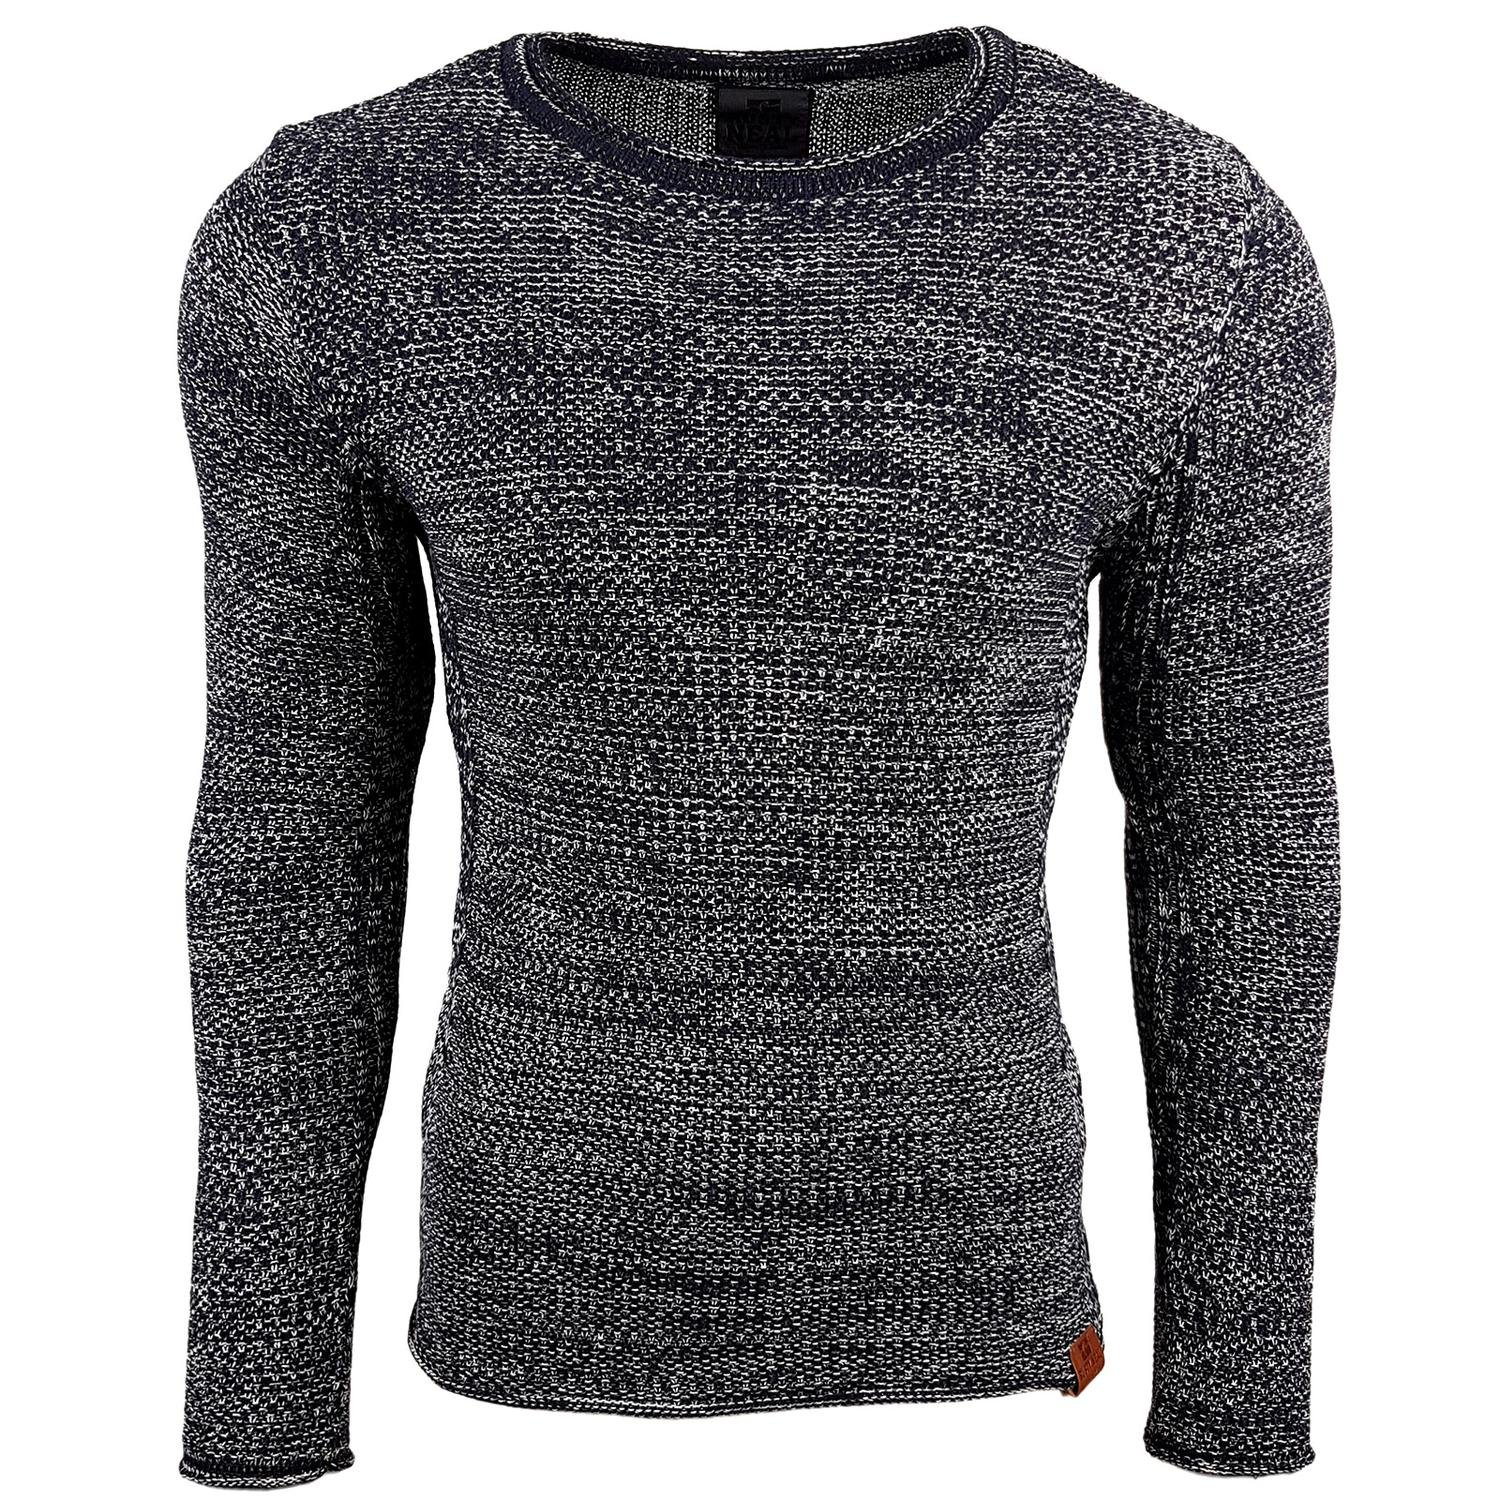 Subliminal Mode Men's Jumper